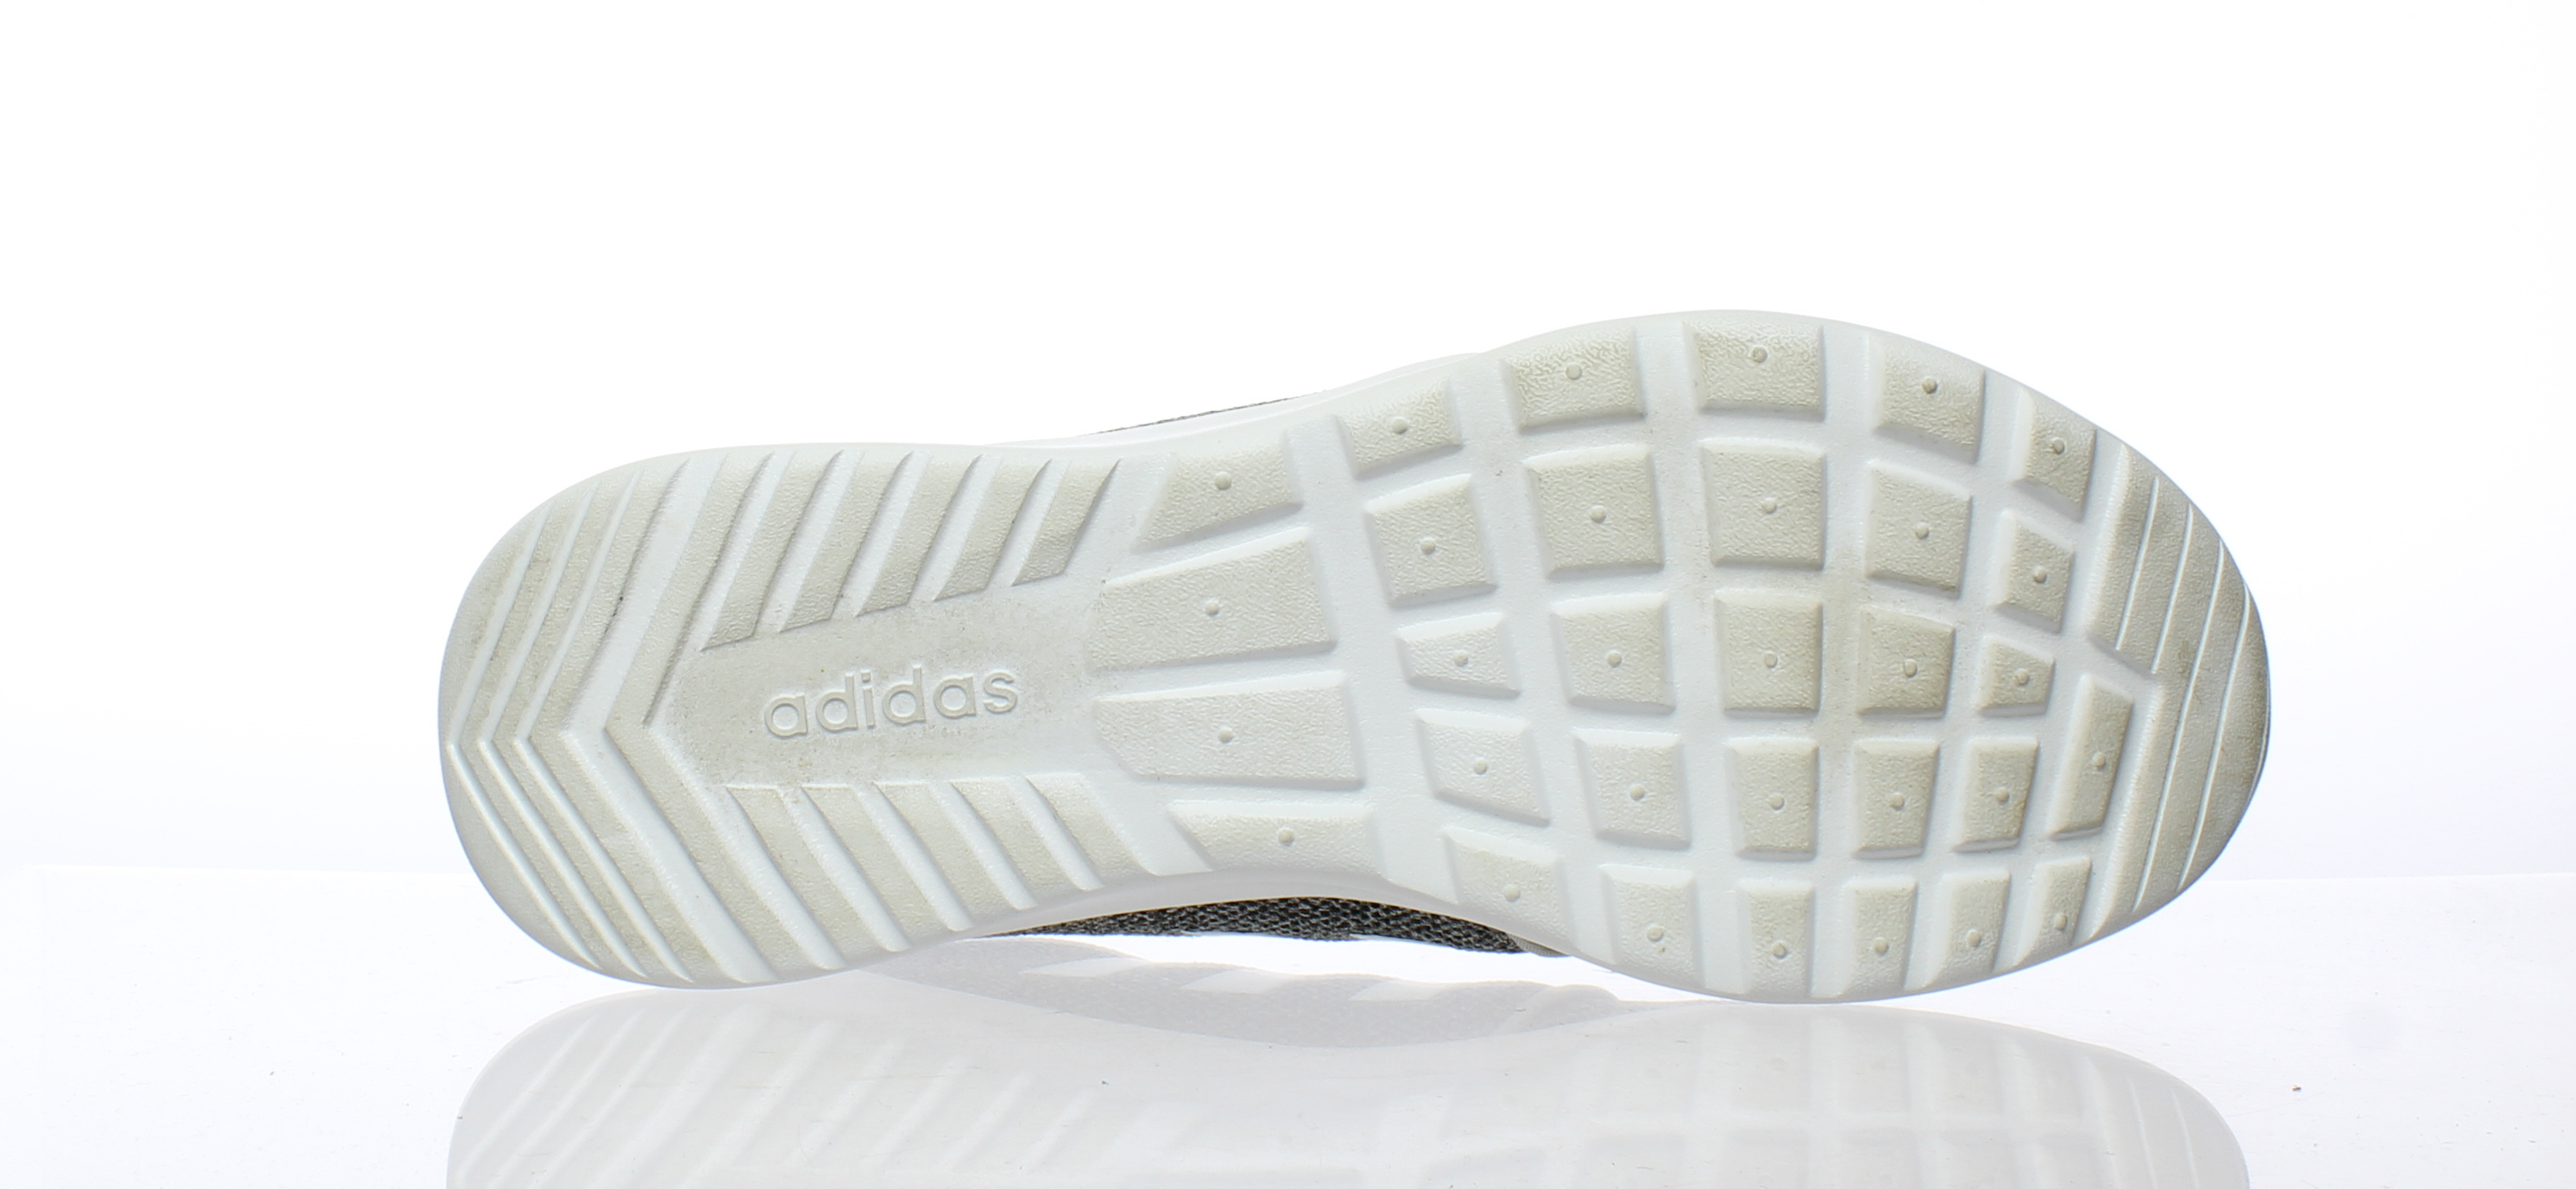 Details about Adidas Womens Cloudfoam Qt Racer Gray Running Shoes Size 8 (324749)